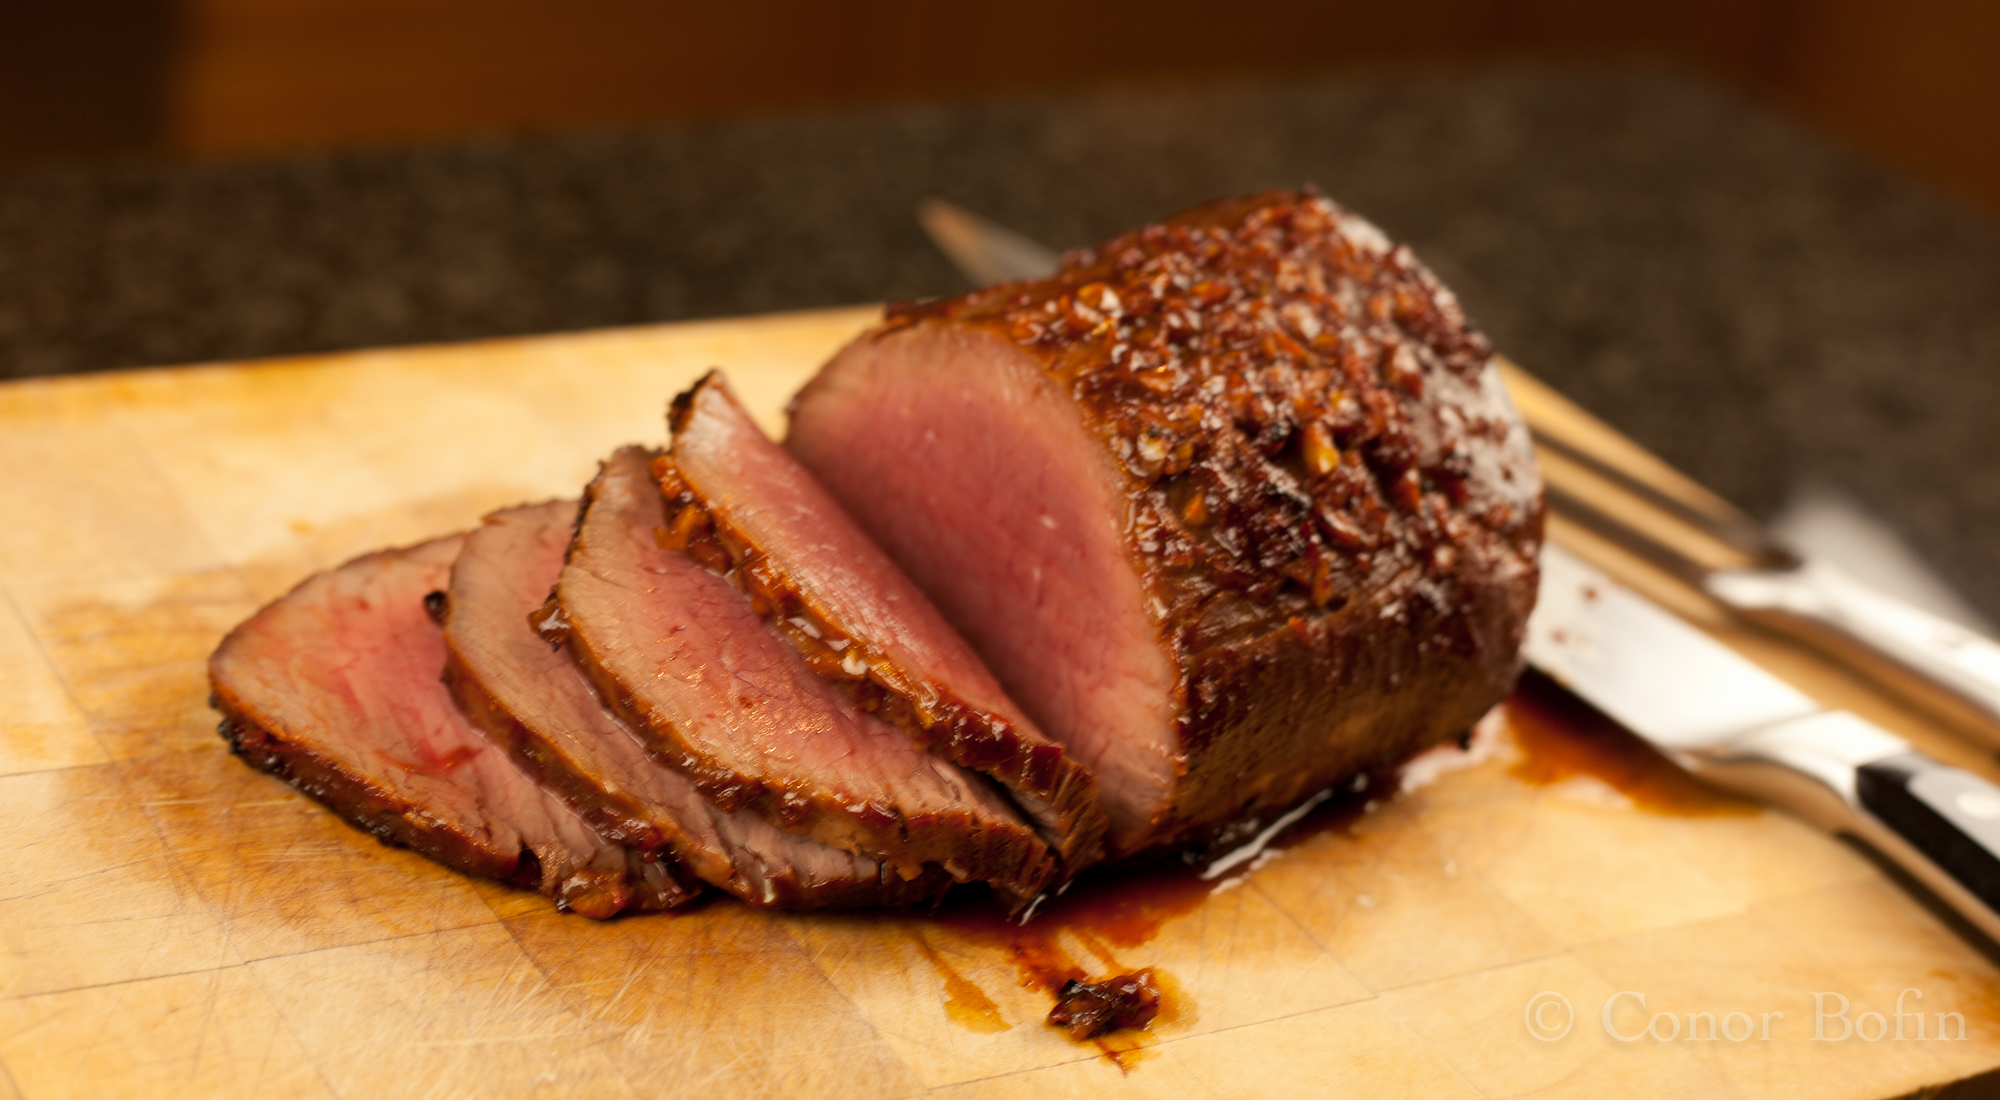 Images Of Cooked Meat | www.pixshark.com - Images ...